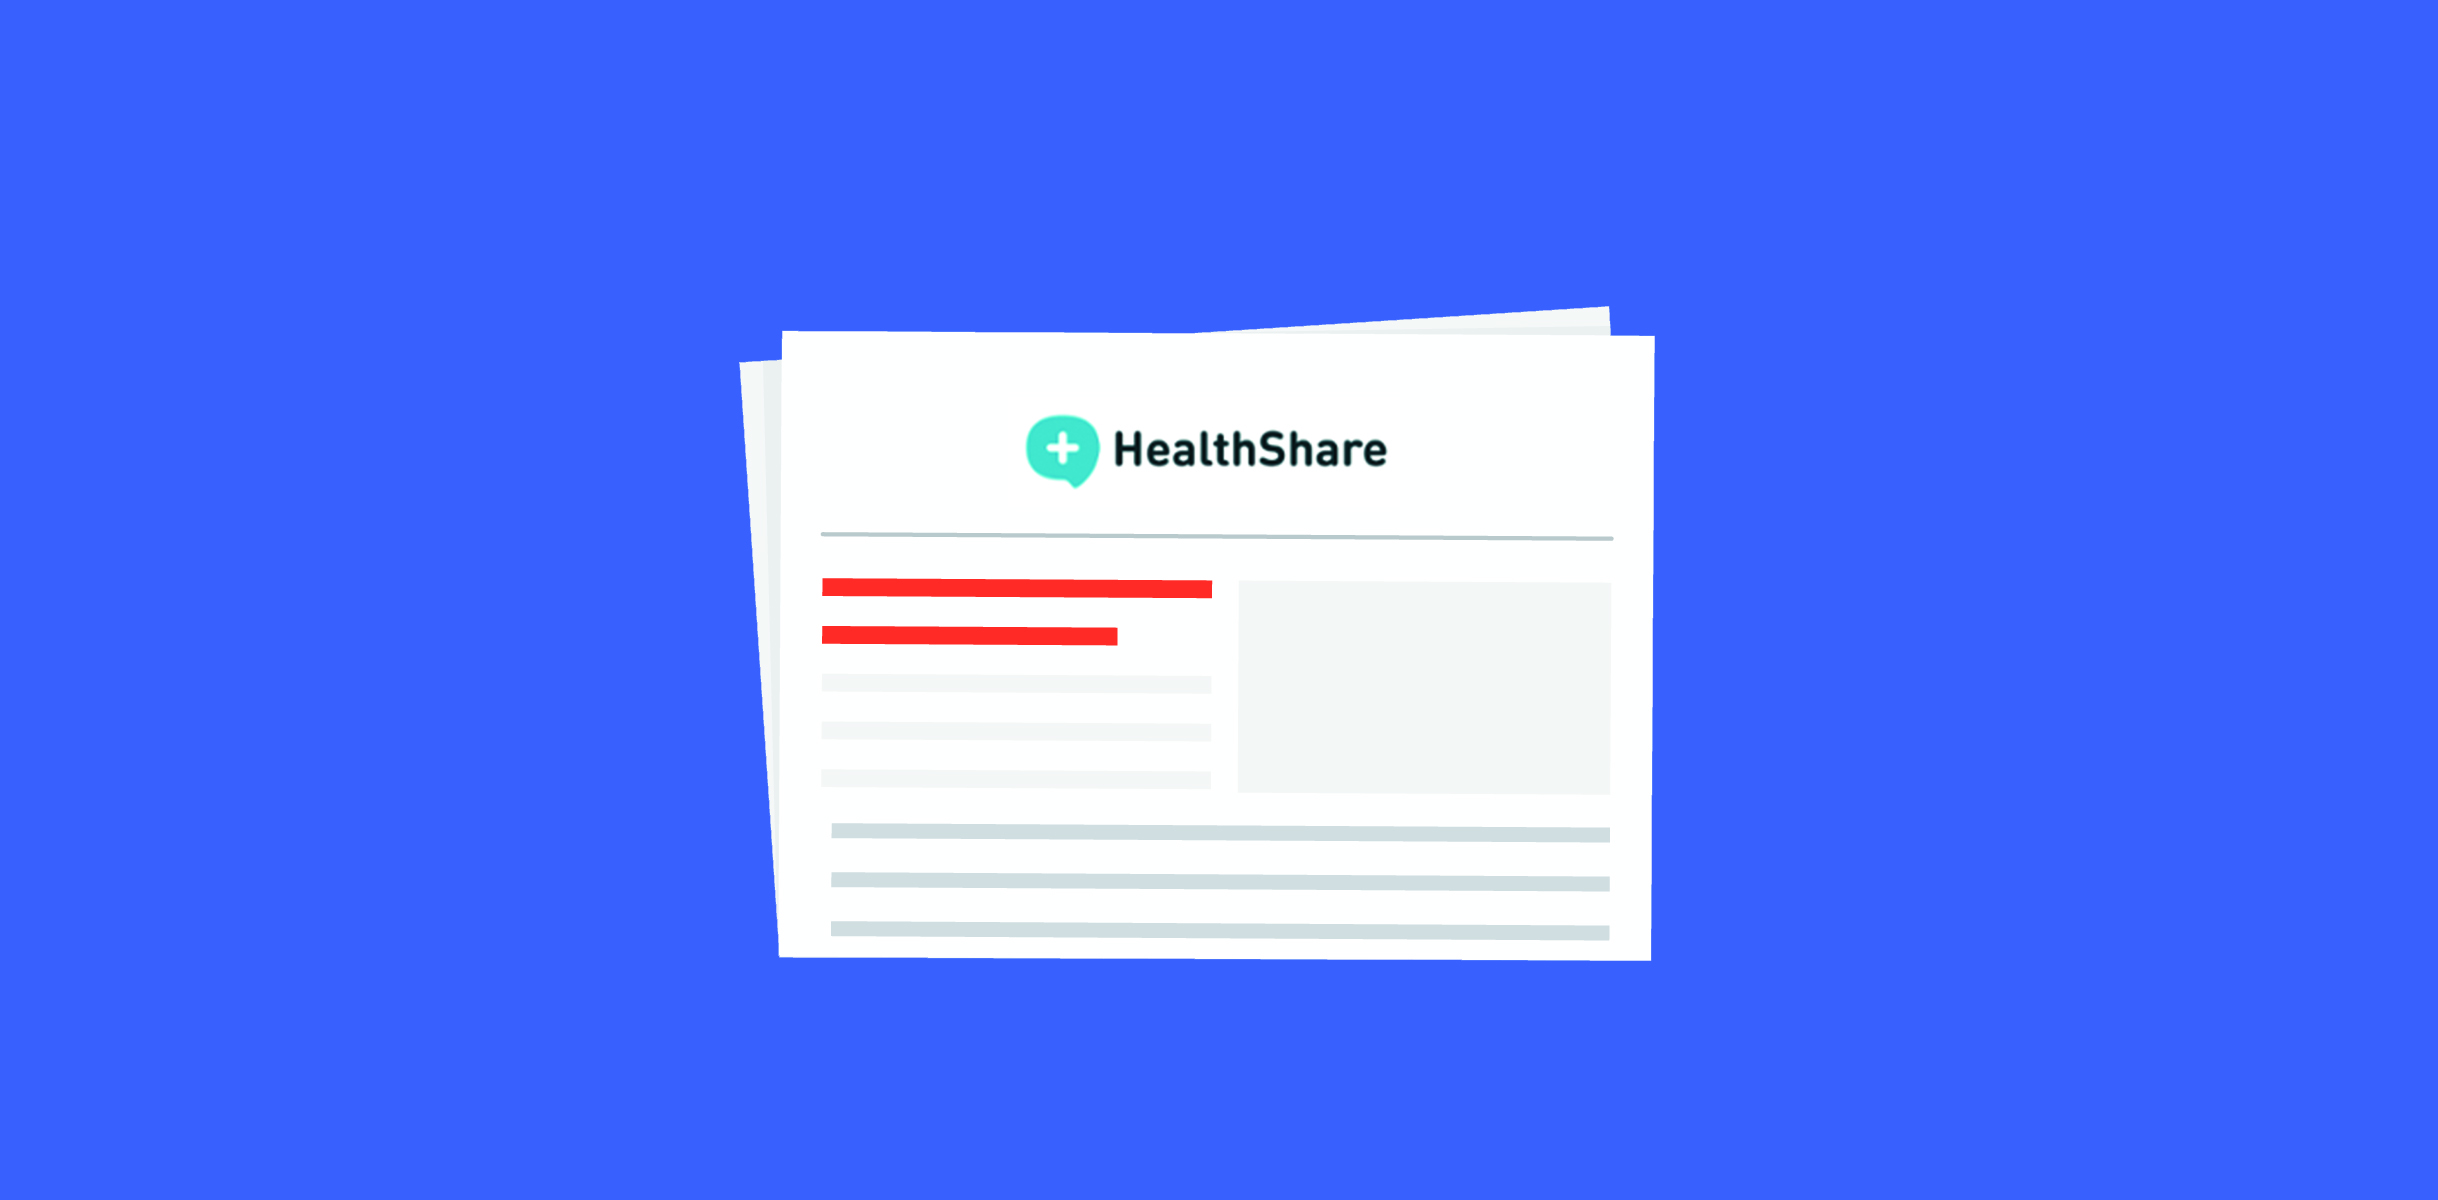 HealthShare partner with nib to put out-of-pocket information in hands of doctors and consumers